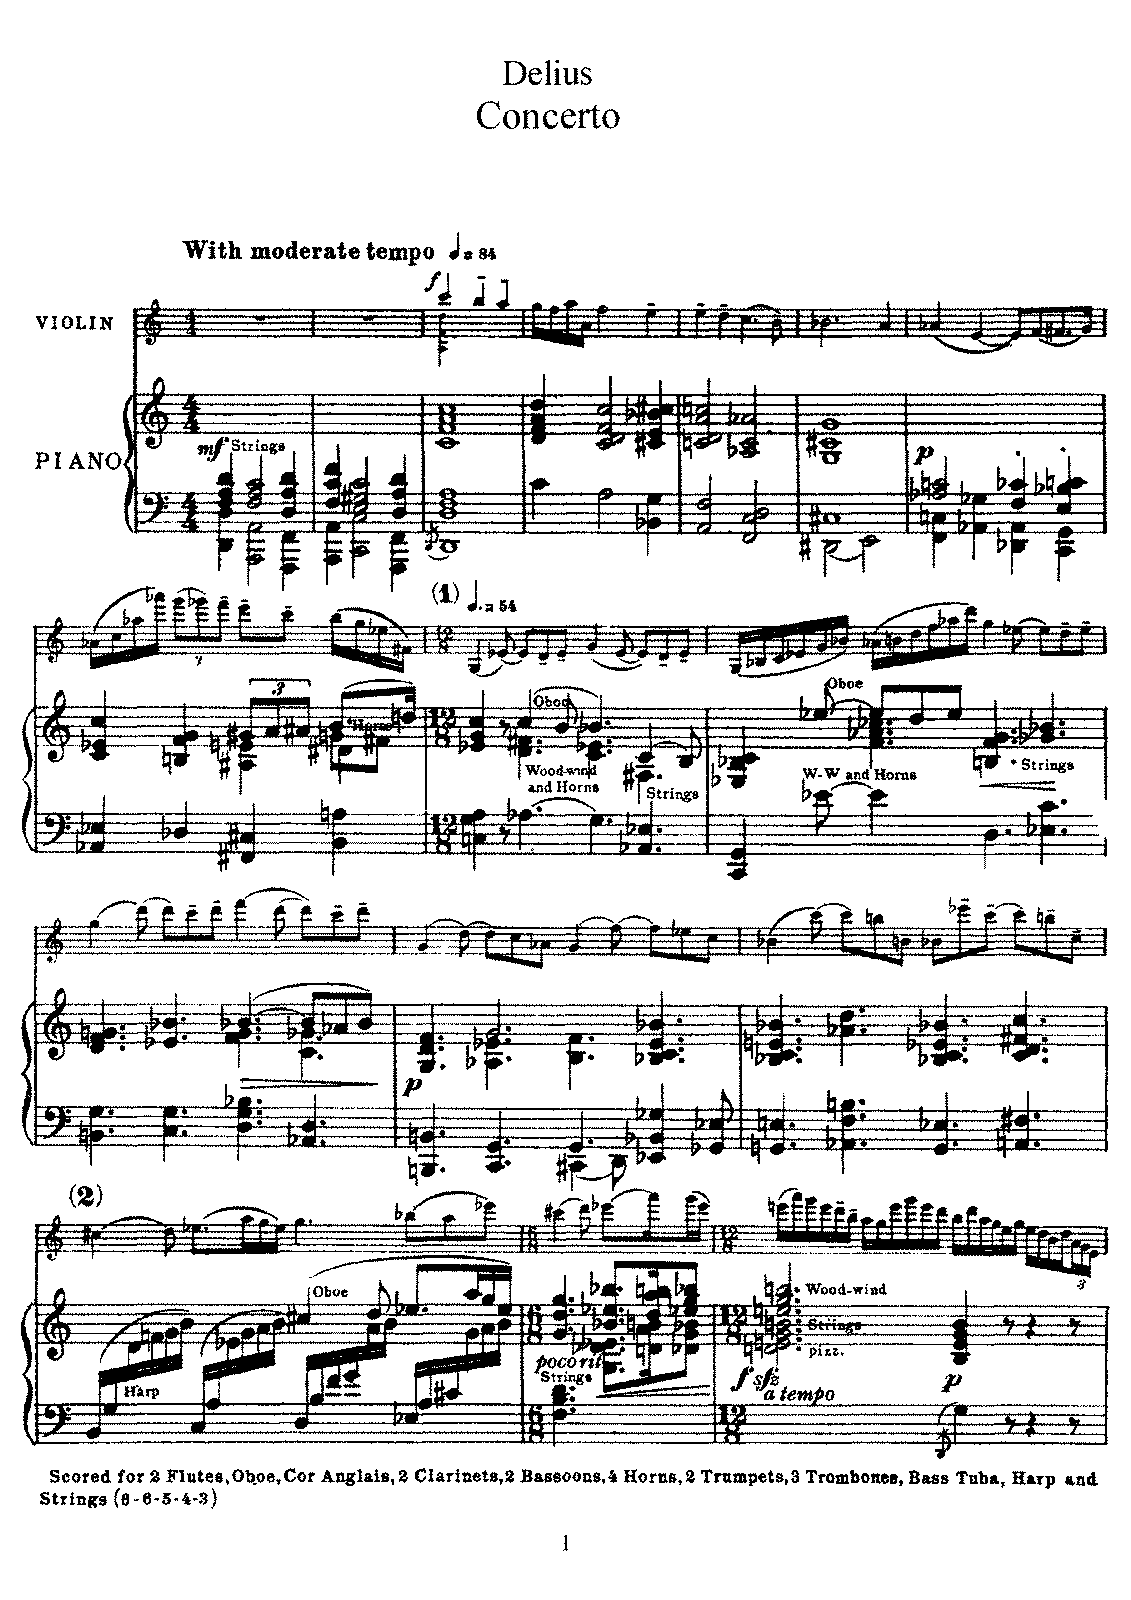 Delius Violin Concerto pianored.pdf